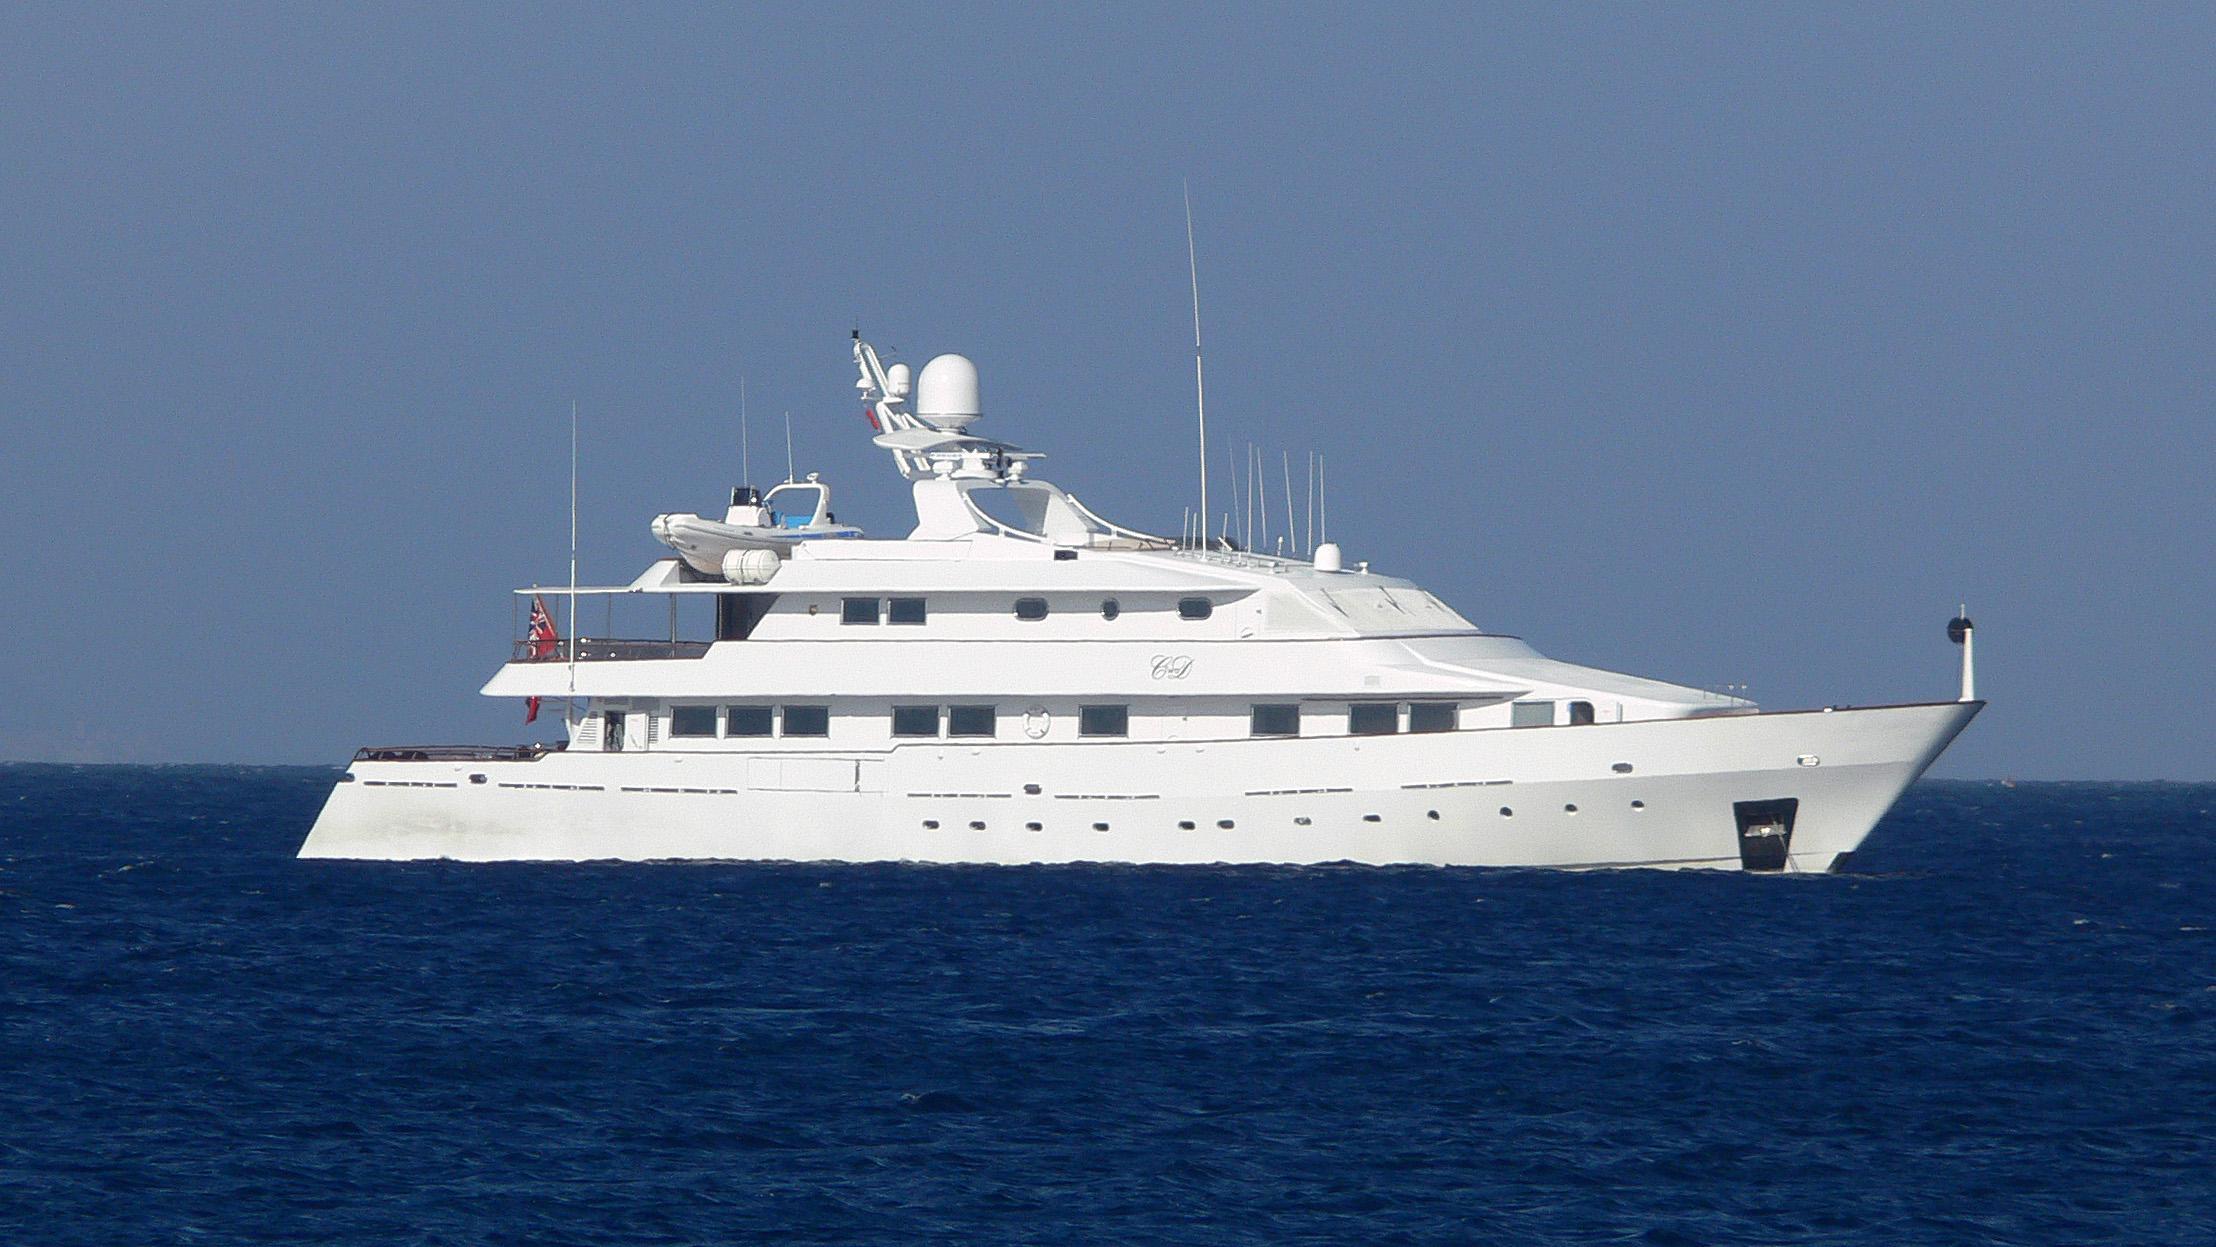 cd-two-motor-yacht-nicolini-1993-43m-profile